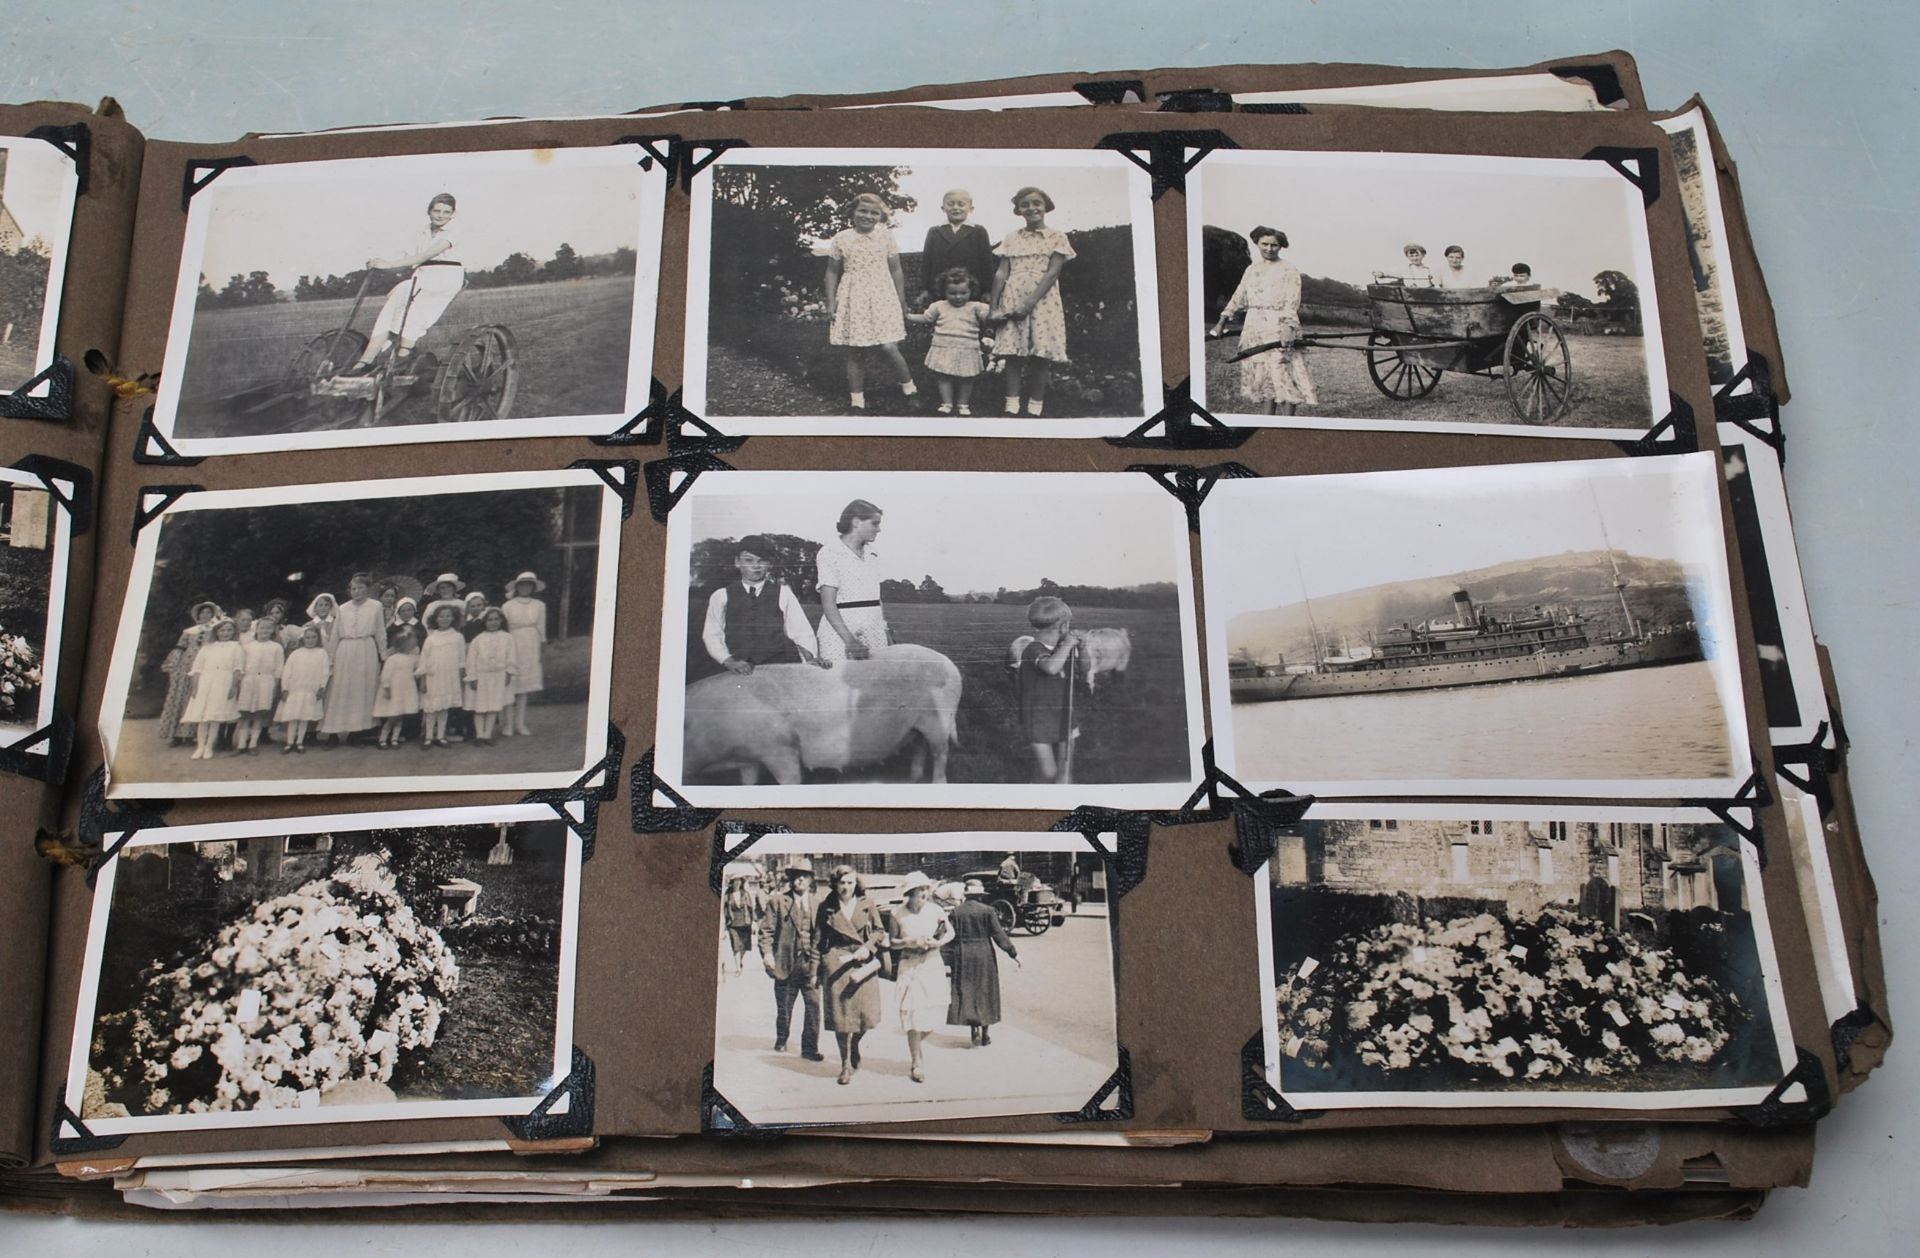 EARLY 20TH CENTURY BLACK AND WHITE PHOTO ALBUM - Image 6 of 14